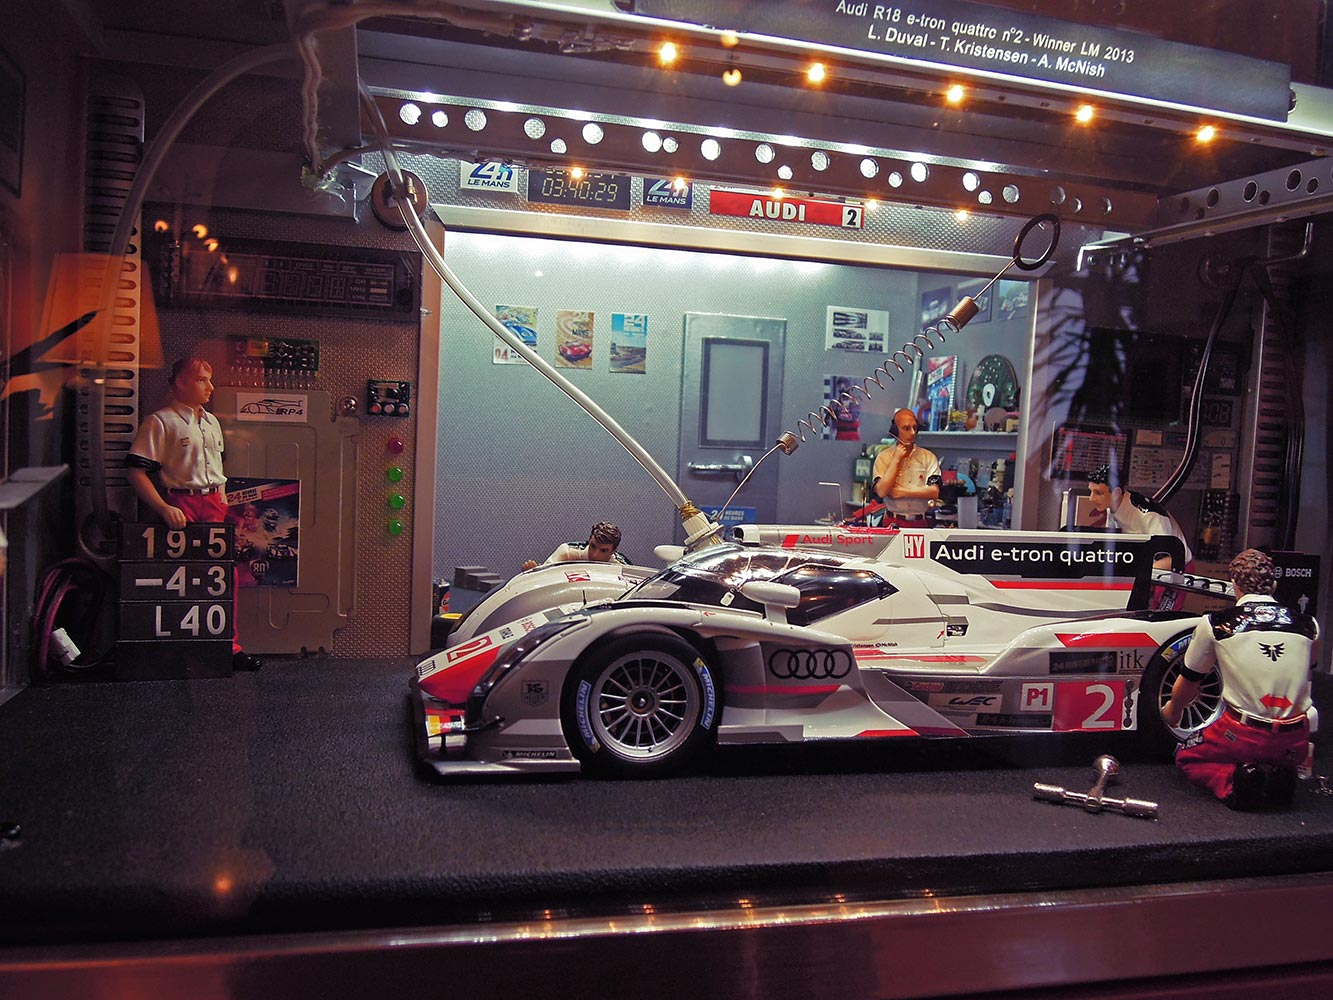 Stand-24-heures-du-mans-2013-2